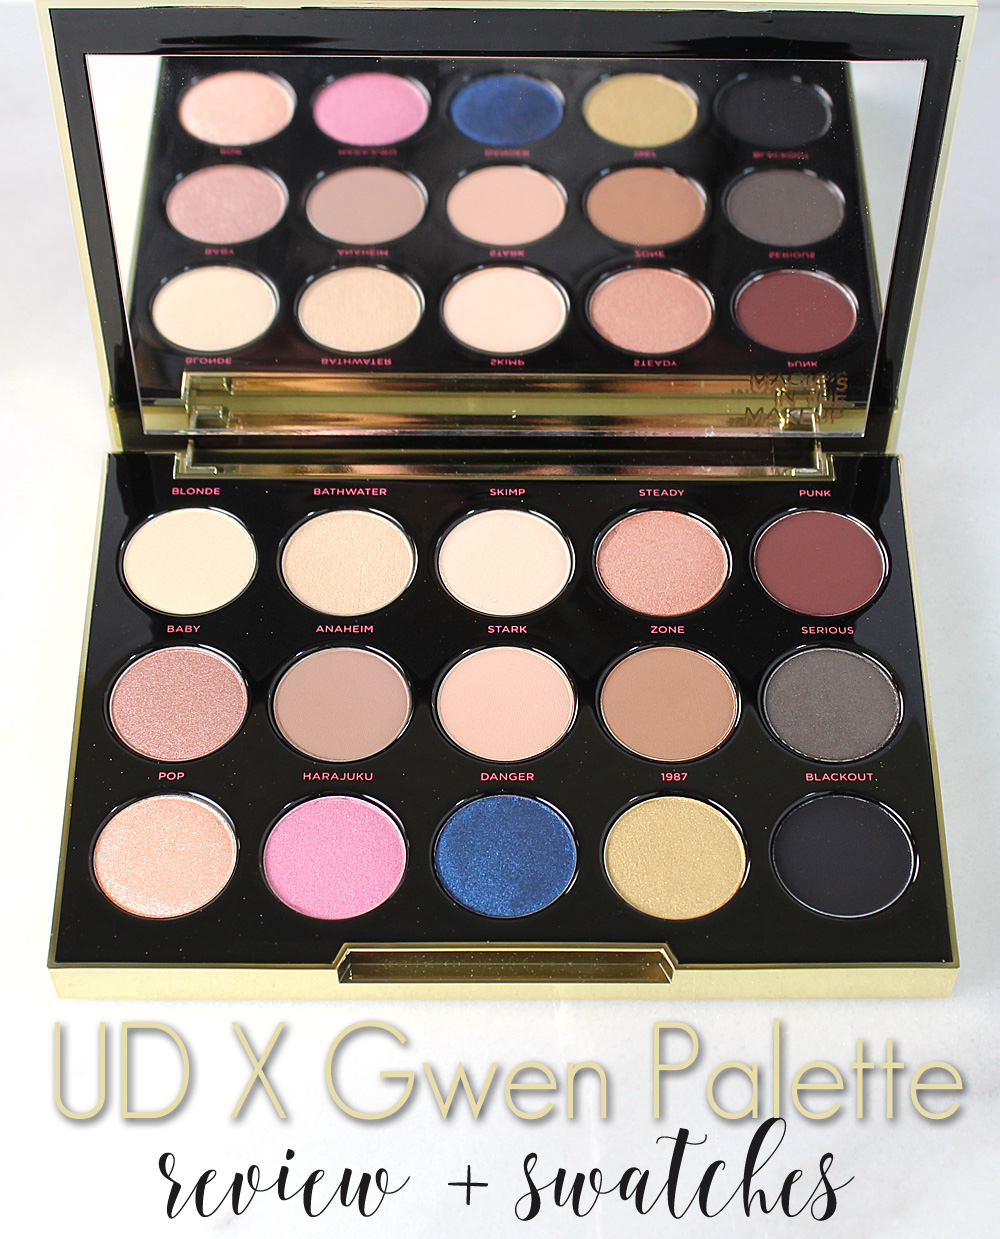 UD| Gwen Stefani Eyeshadow Palette : Review + Swatches